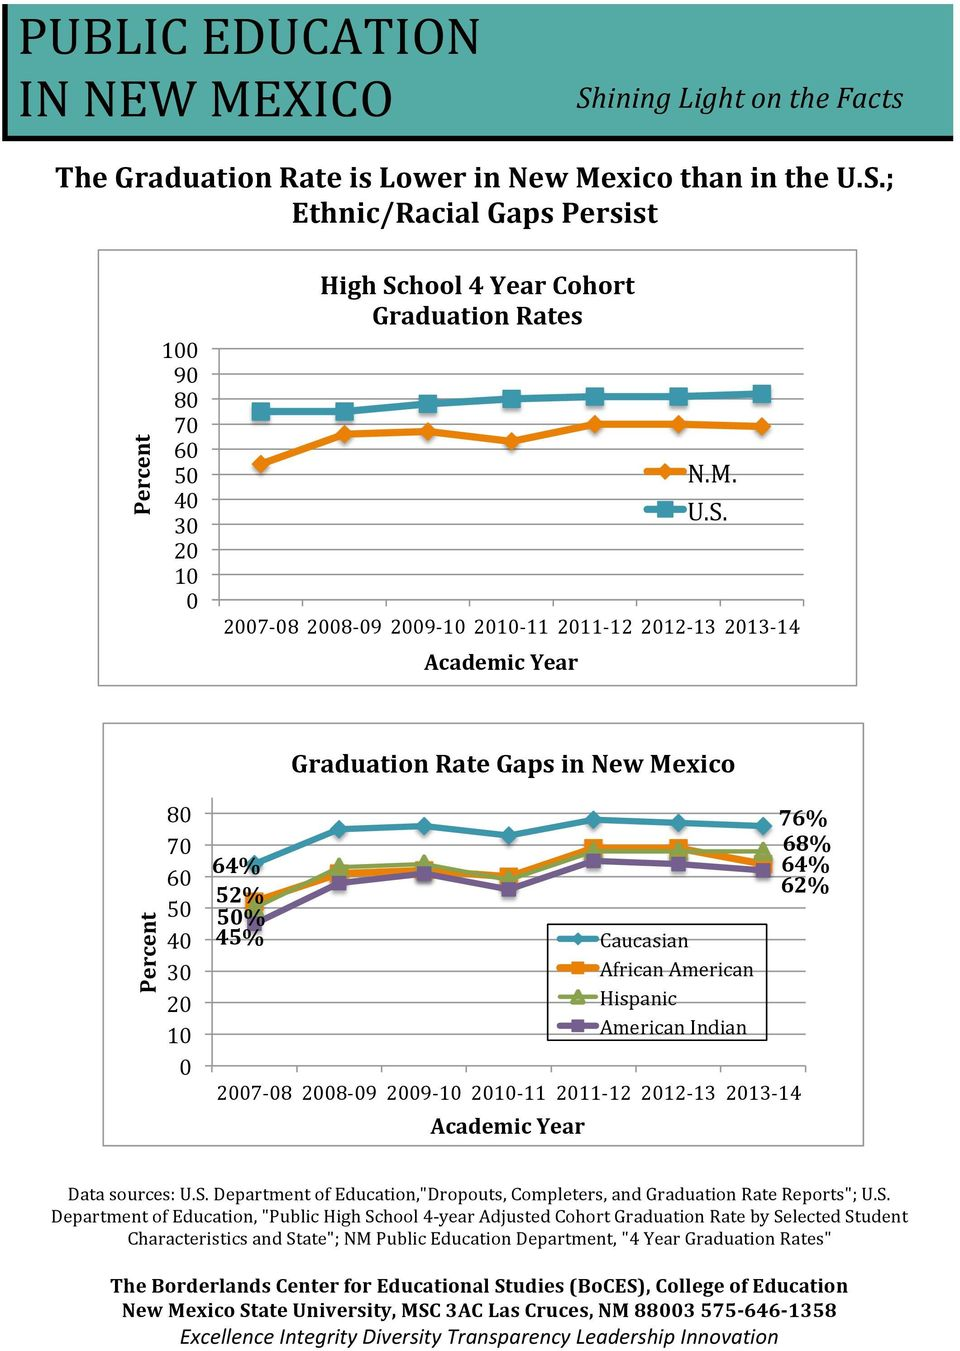 hool 4 Year Cohort Graduation Rates 2007-08 2008-09 2009-10 2010-11 2011-12 2012-13 2013-14 Academic Year N.M. U.S.